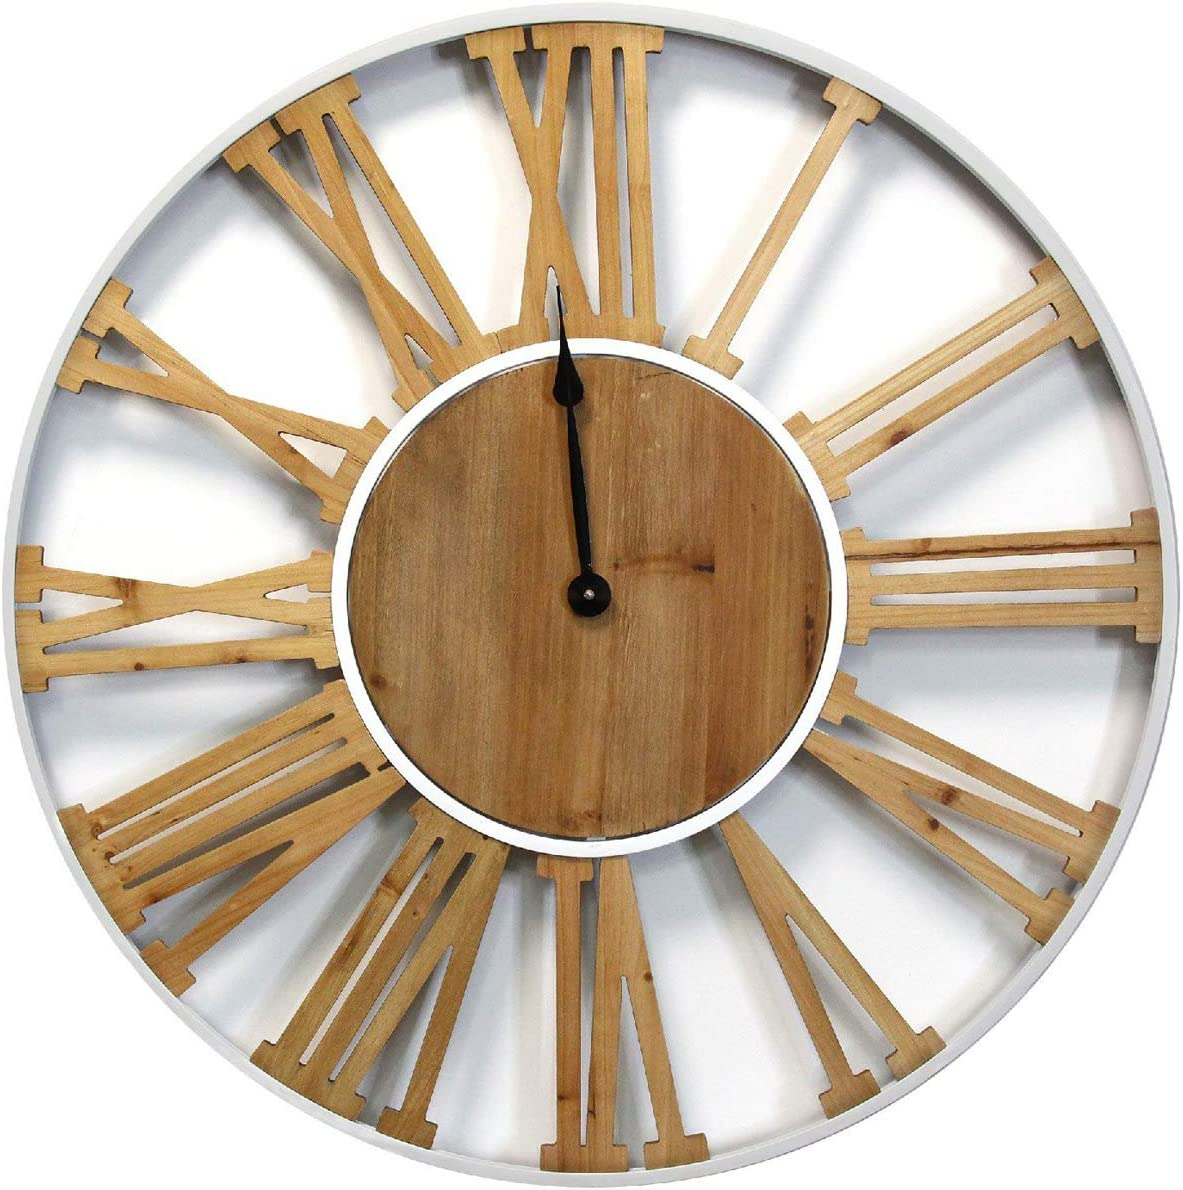 "Stratton Home Décor Stratton Home Decor Franklin Wood and Metal Clock, 30.00"" W X 2.00"" D X 30.00"" H, White, Brown, Black"